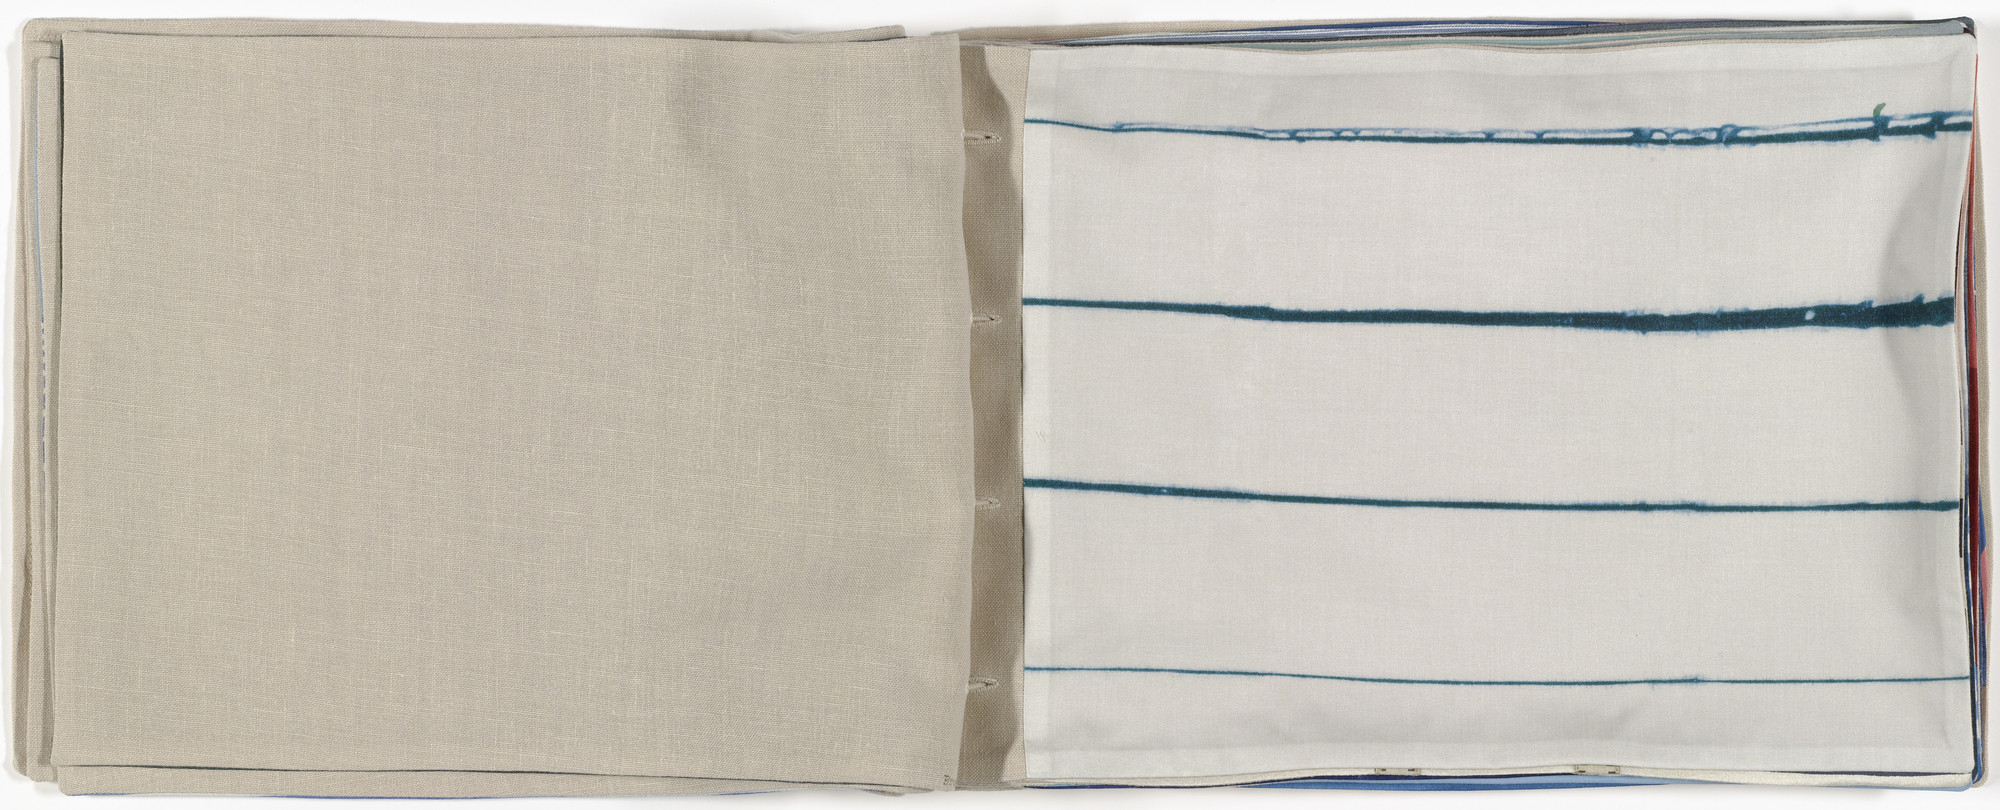 Louise Bourgeois. Untitled, no. 4 of 23, from the illustrated book, Ode à la Bièvre. 2007